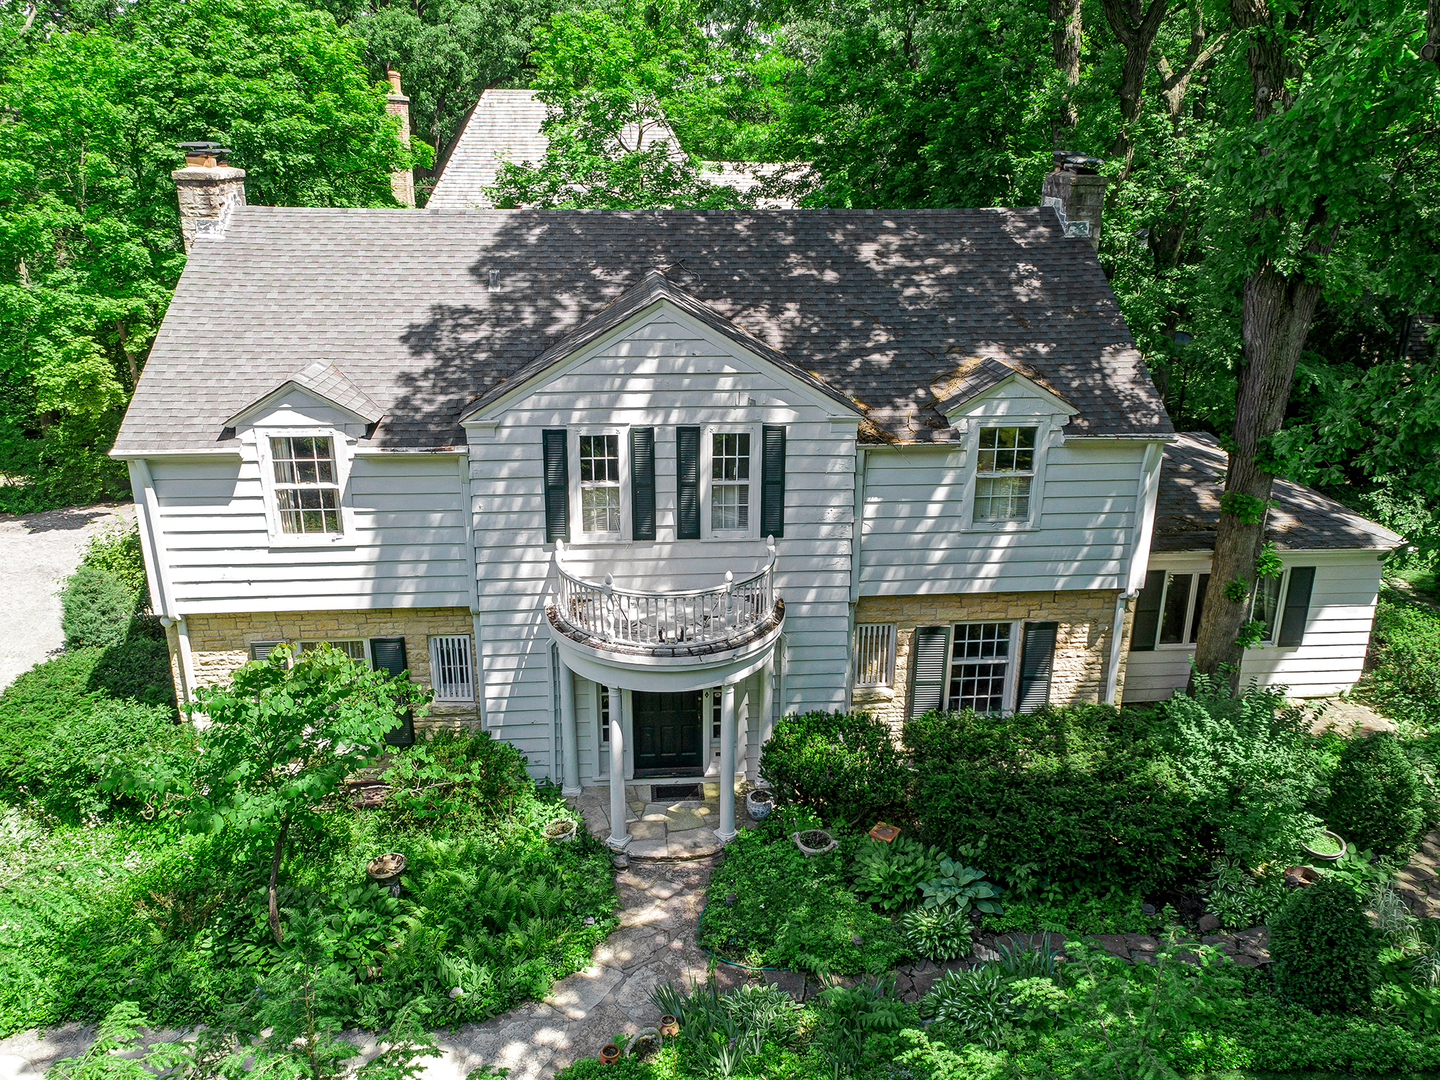 429 South County Line Road, Hinsdale, Illinois 60521